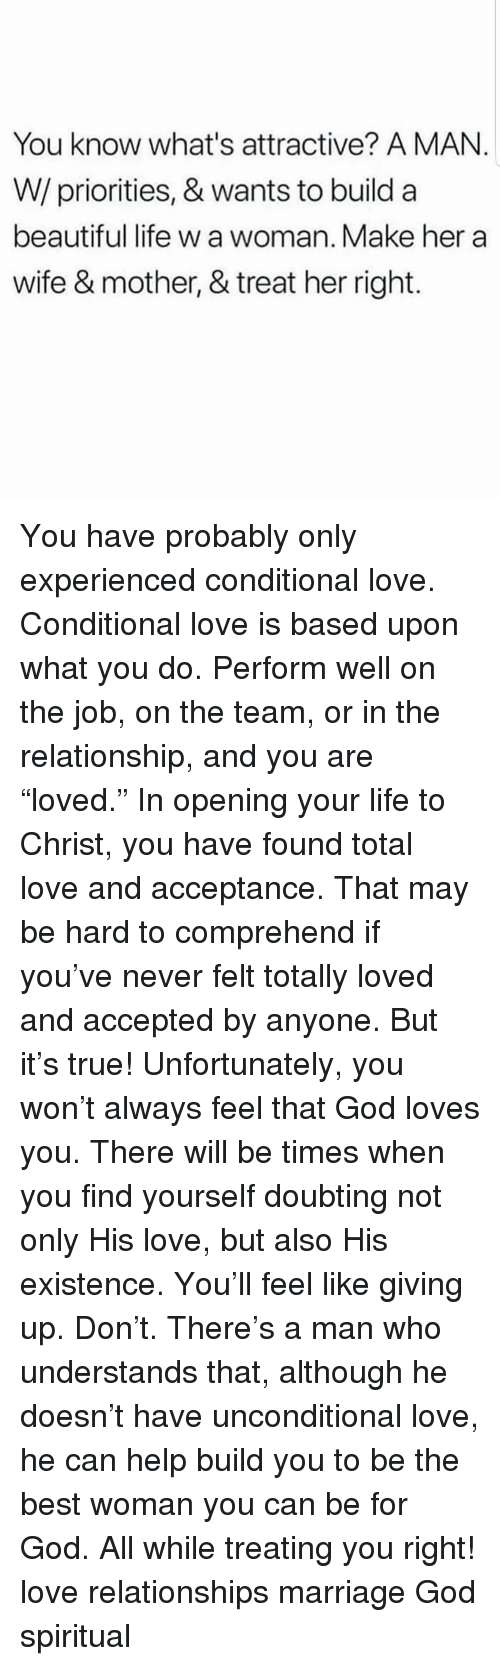 """Beautiful, God, and Life: You know what's attractive? A MAN.  W/priorities, & wants to build a  beautiful life w a woman. Make her a  wife & mother, & treat her right. You have probably only experienced conditional love. Conditional love is based upon what you do. Perform well on the job, on the team, or in the relationship, and you are """"loved."""" In opening your life to Christ, you have found total love and acceptance. That may be hard to comprehend if you've never felt totally loved and accepted by anyone. But it's true! Unfortunately, you won't always feel that God loves you. There will be times when you find yourself doubting not only His love, but also His existence. You'll feel like giving up. Don't. There's a man who understands that, although he doesn't have unconditional love, he can help build you to be the best woman you can be for God. All while treating you right! love relationships marriage God spiritual"""